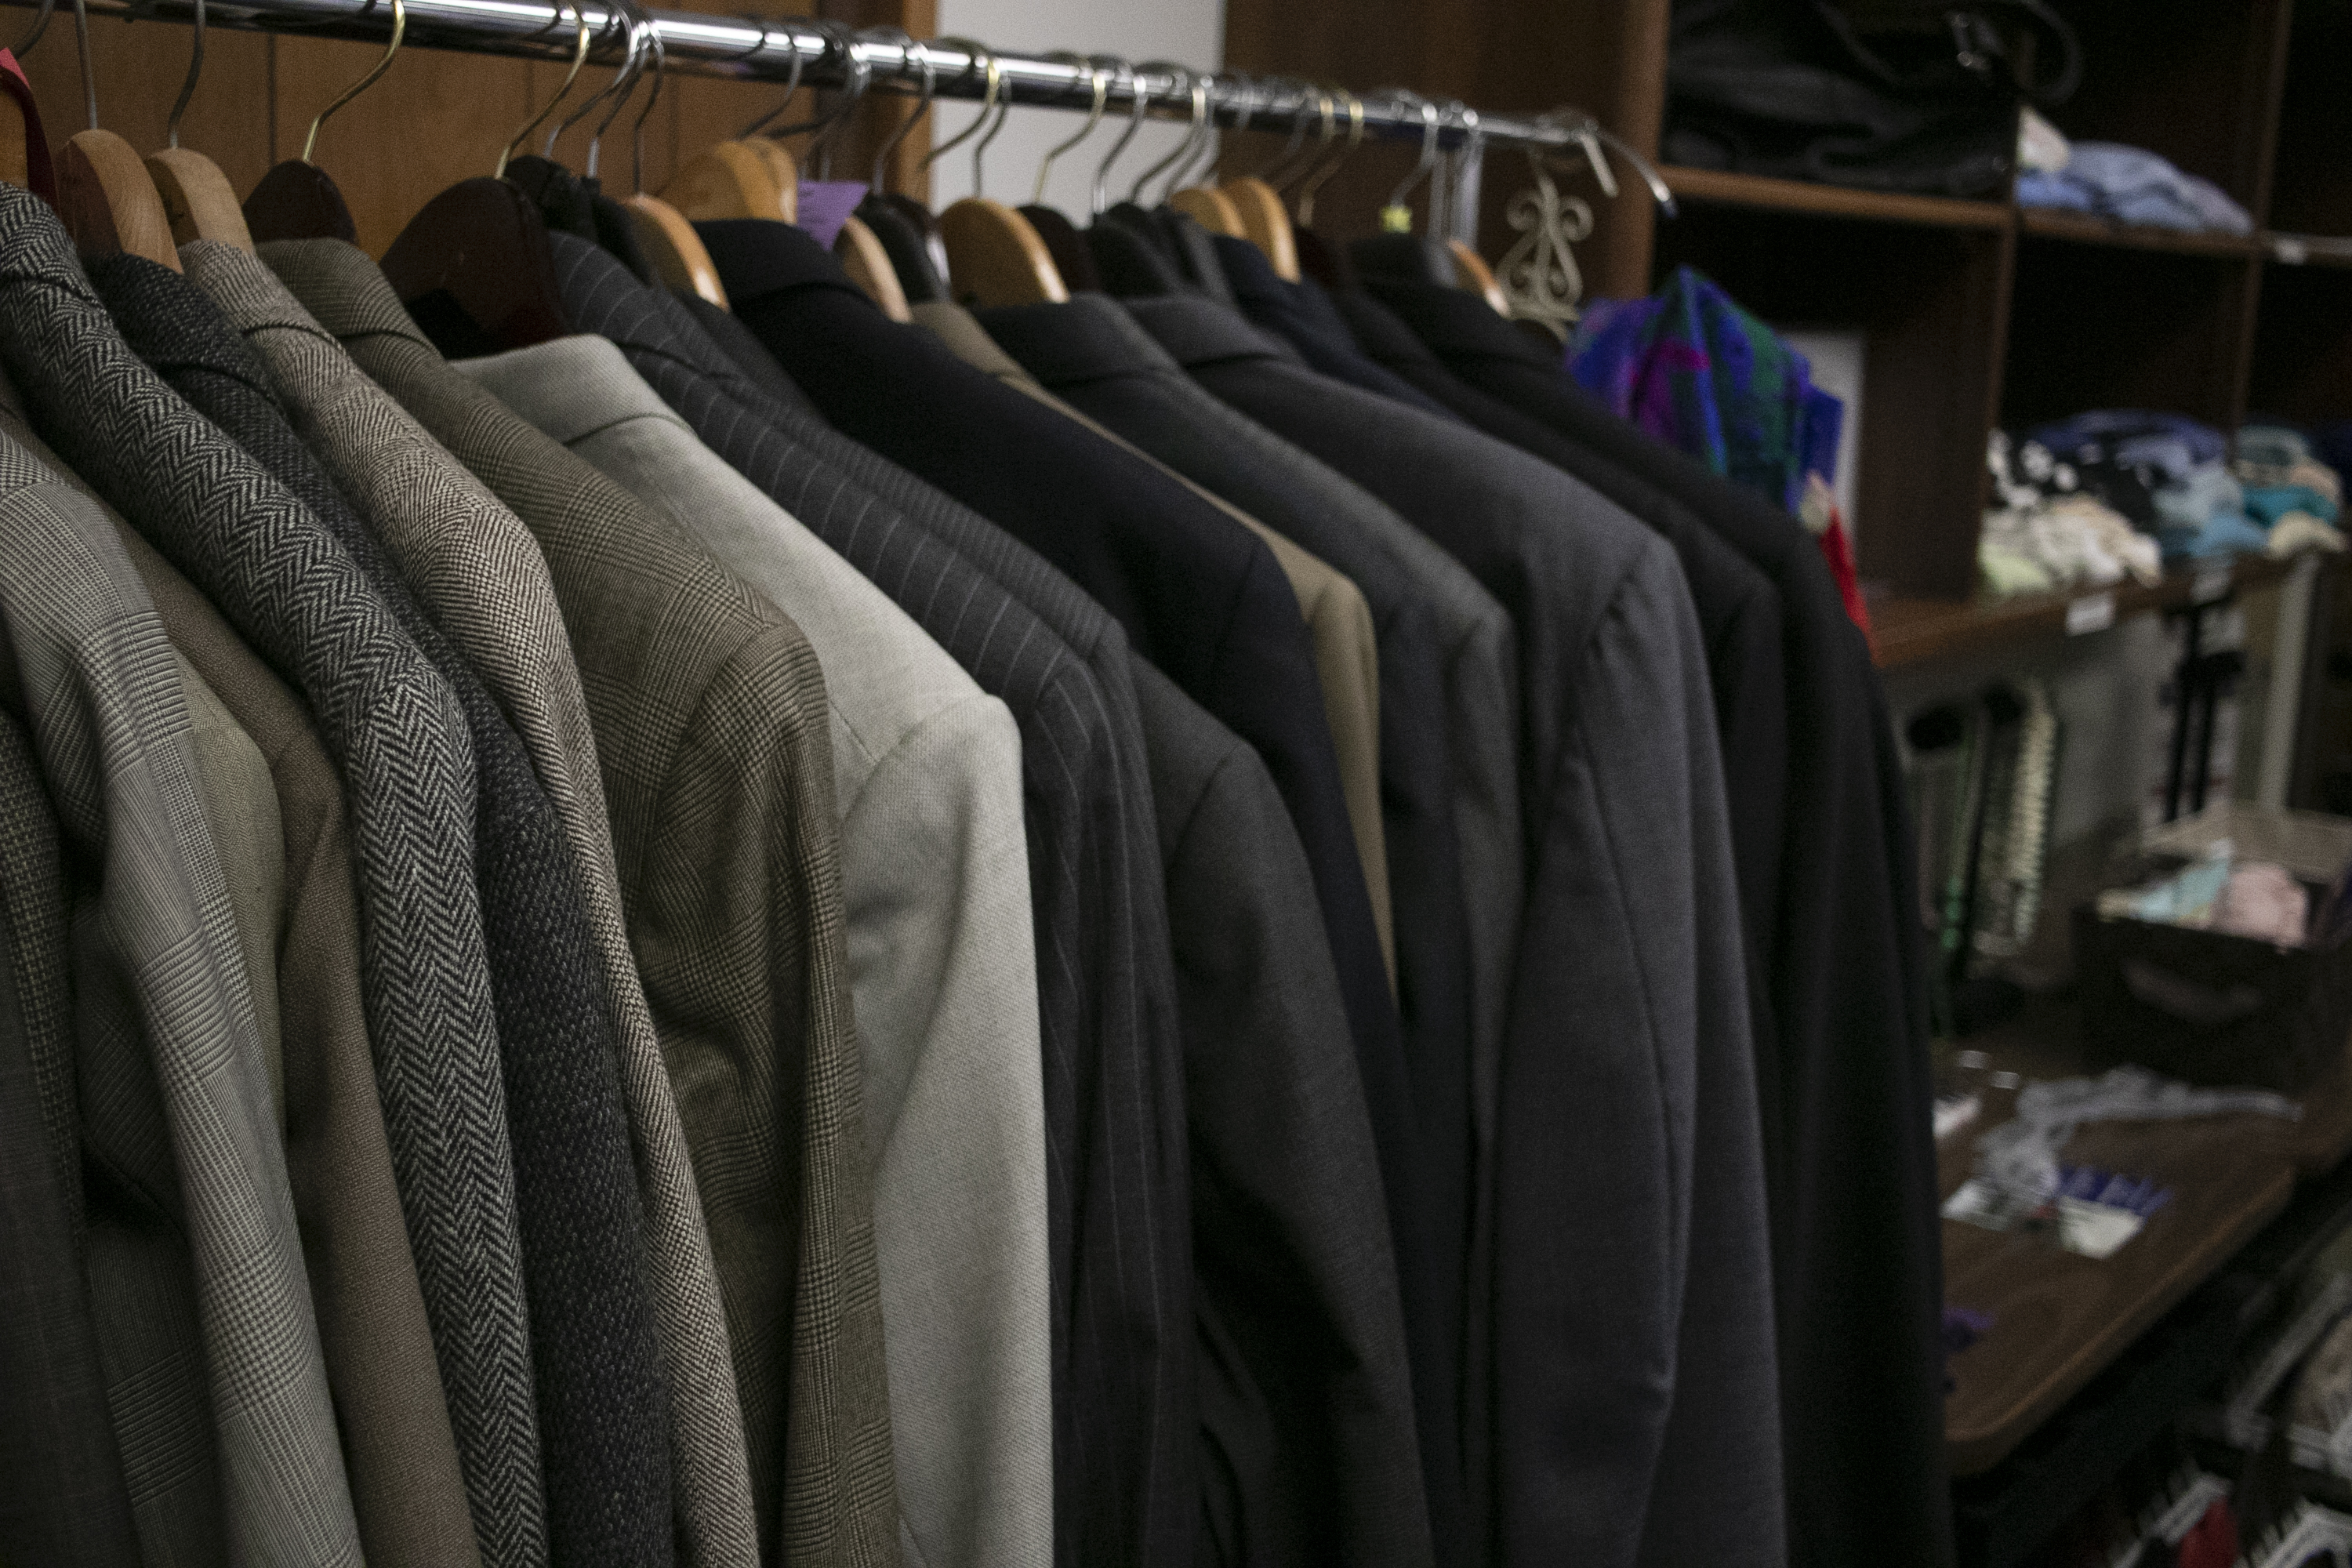 Fresno State Clothing Closet Provides Professional Attire For Students